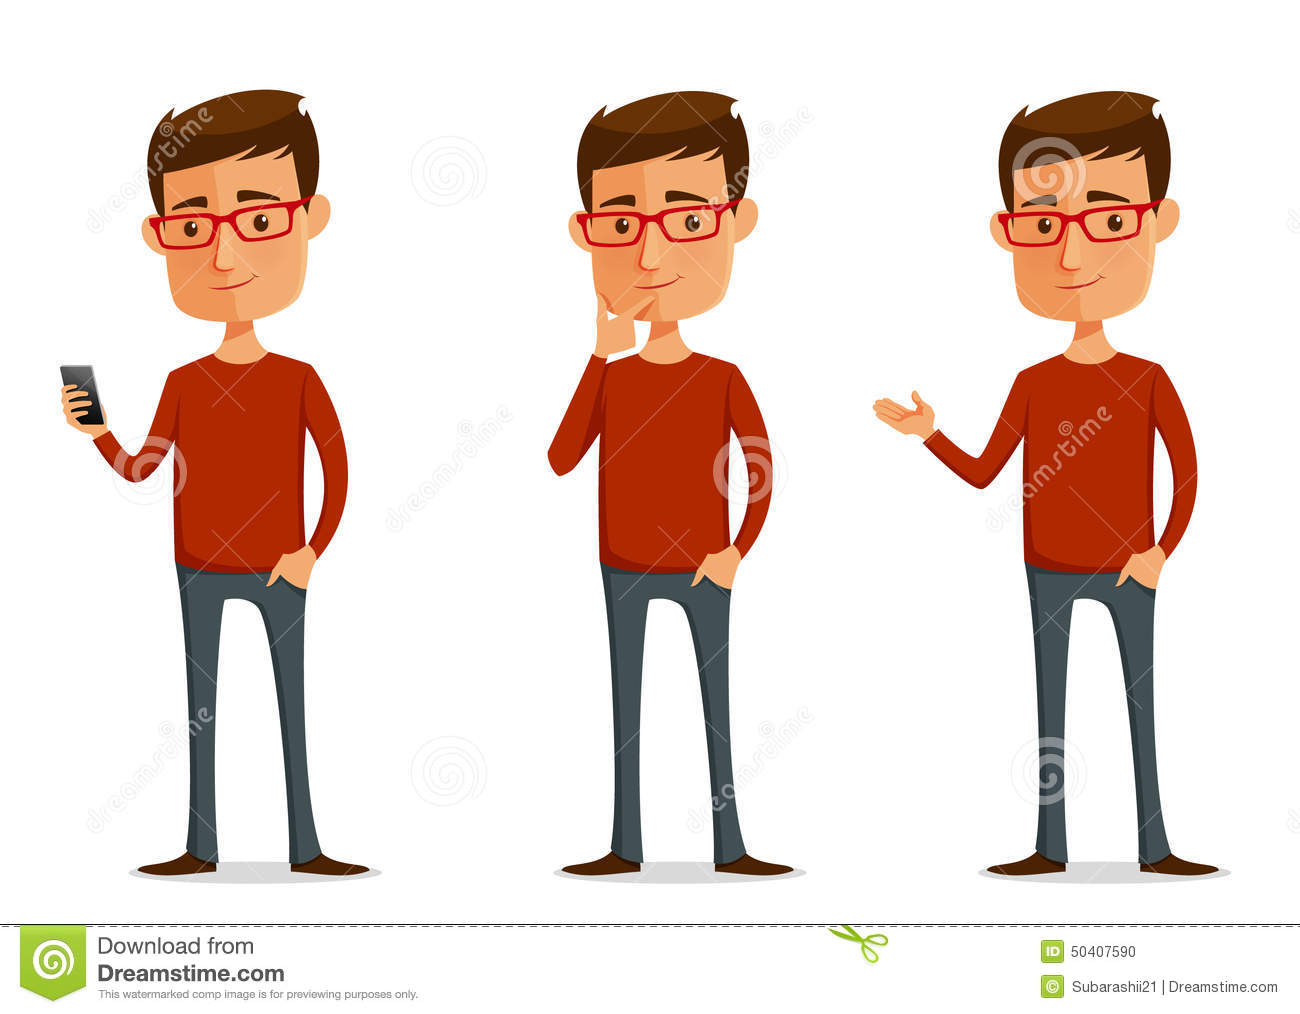 Guy with Sunglasses Clip Art